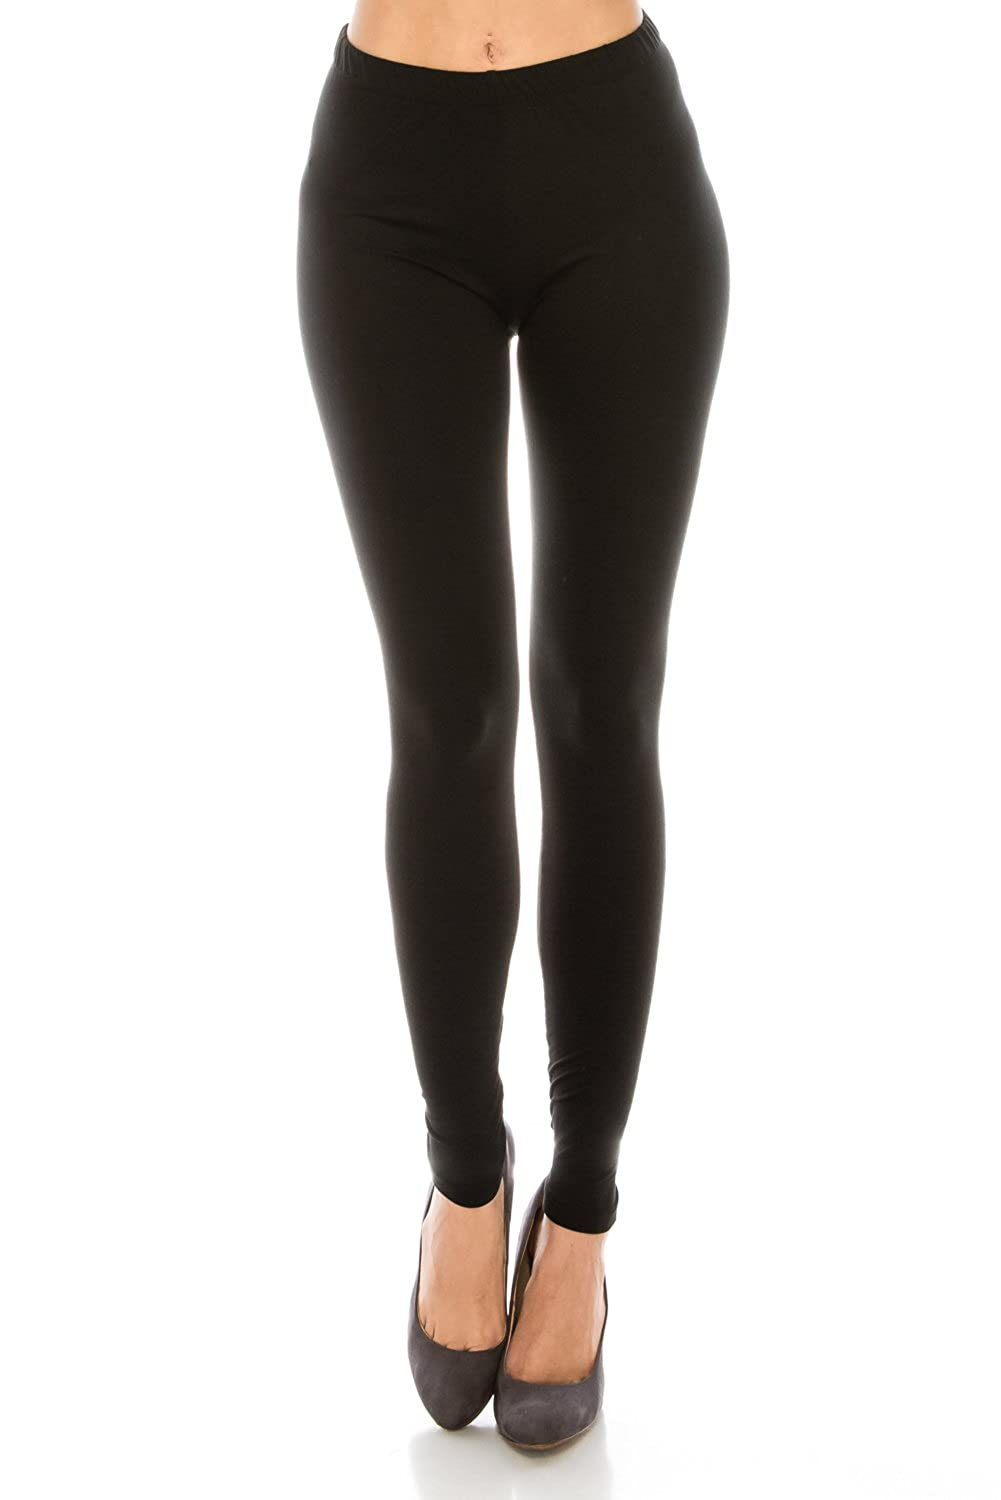 7030473d21b7b DIVERSE COLORS & PRINTS - Our buttery smooth and soft fabric leggings  feature a range of bold exclusive ...